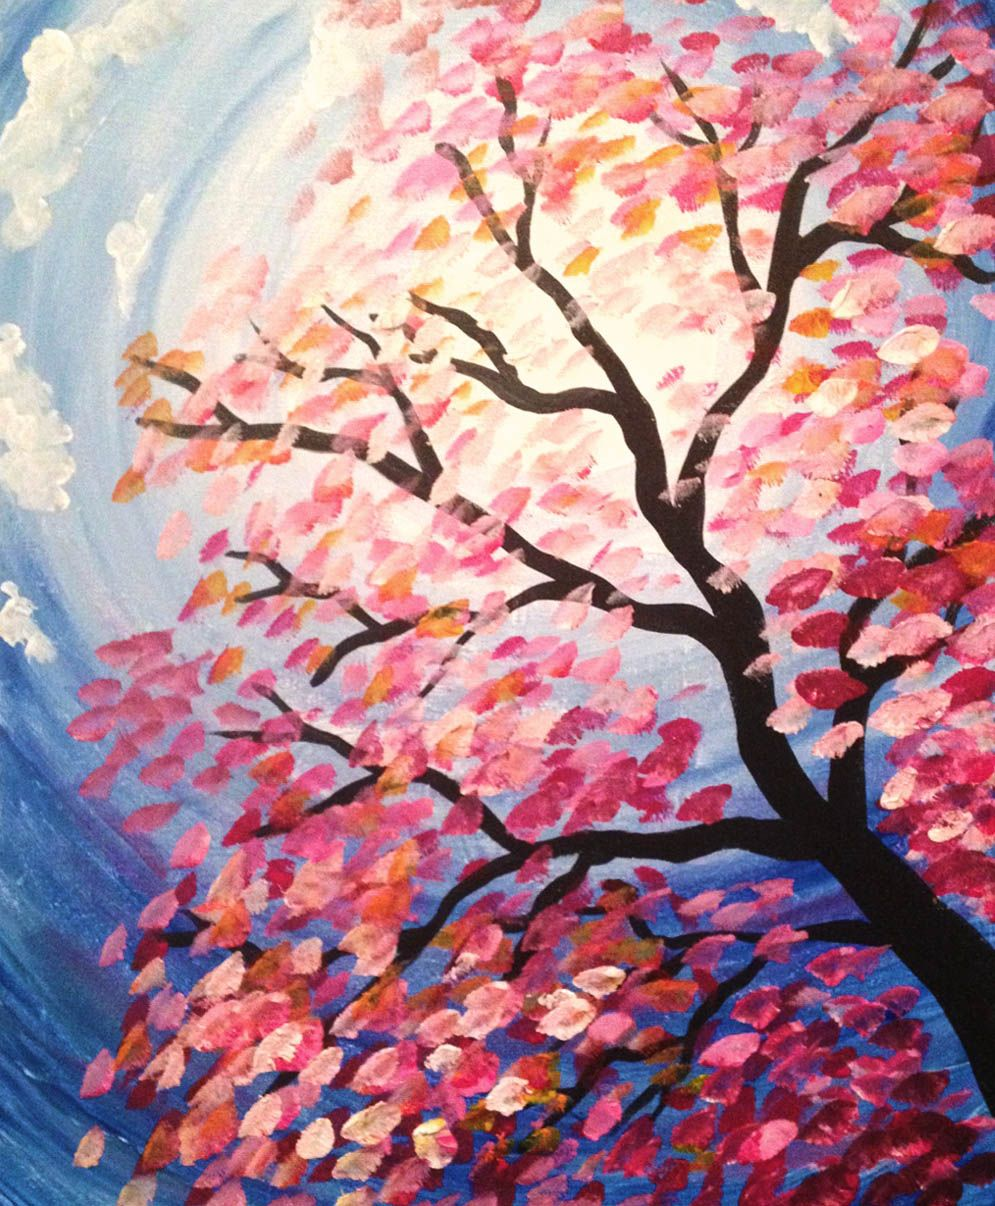 Spring Tree Paint Tyme In South Jersey Paint And Sip Painting Www Painttyme Com Kids Canvas Painting Small Canvas Paintings Spring Painting